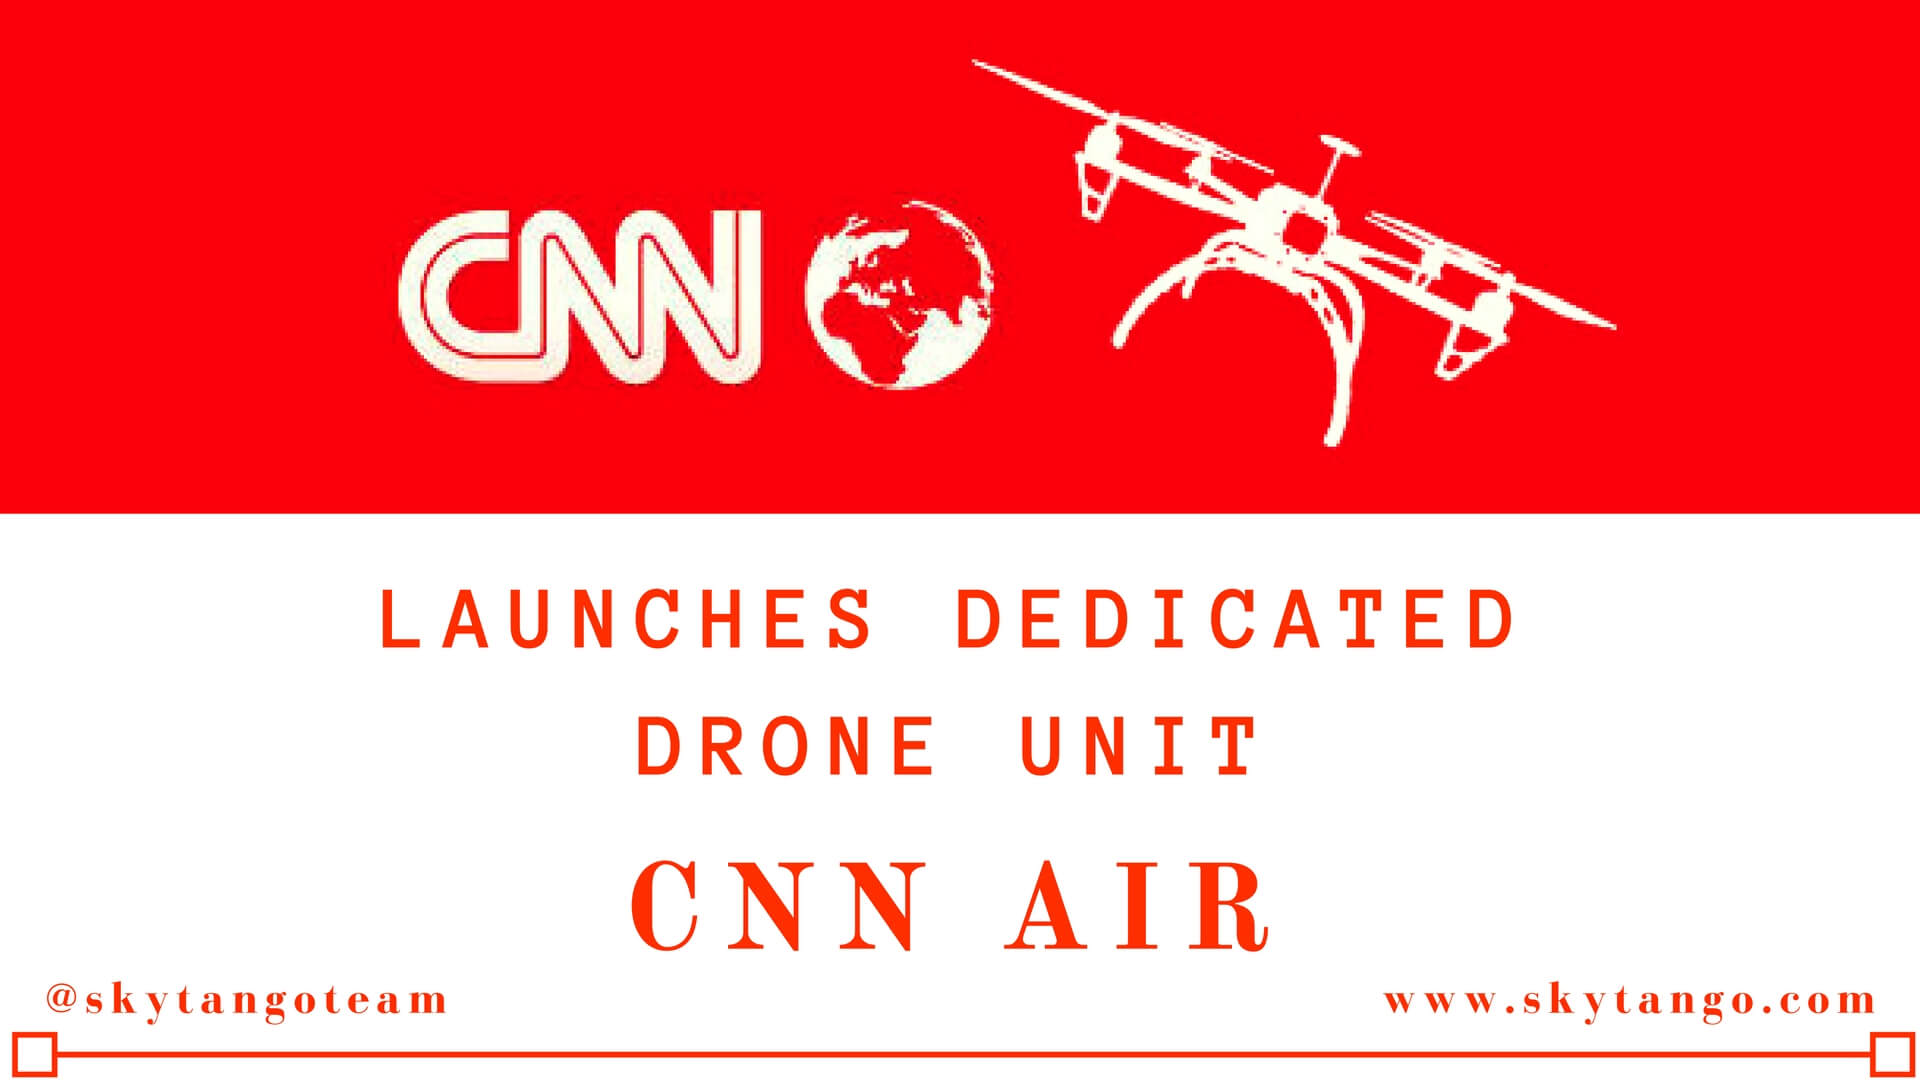 CNN Launches Dedicated Drone Unit CNN Air to gather news footage